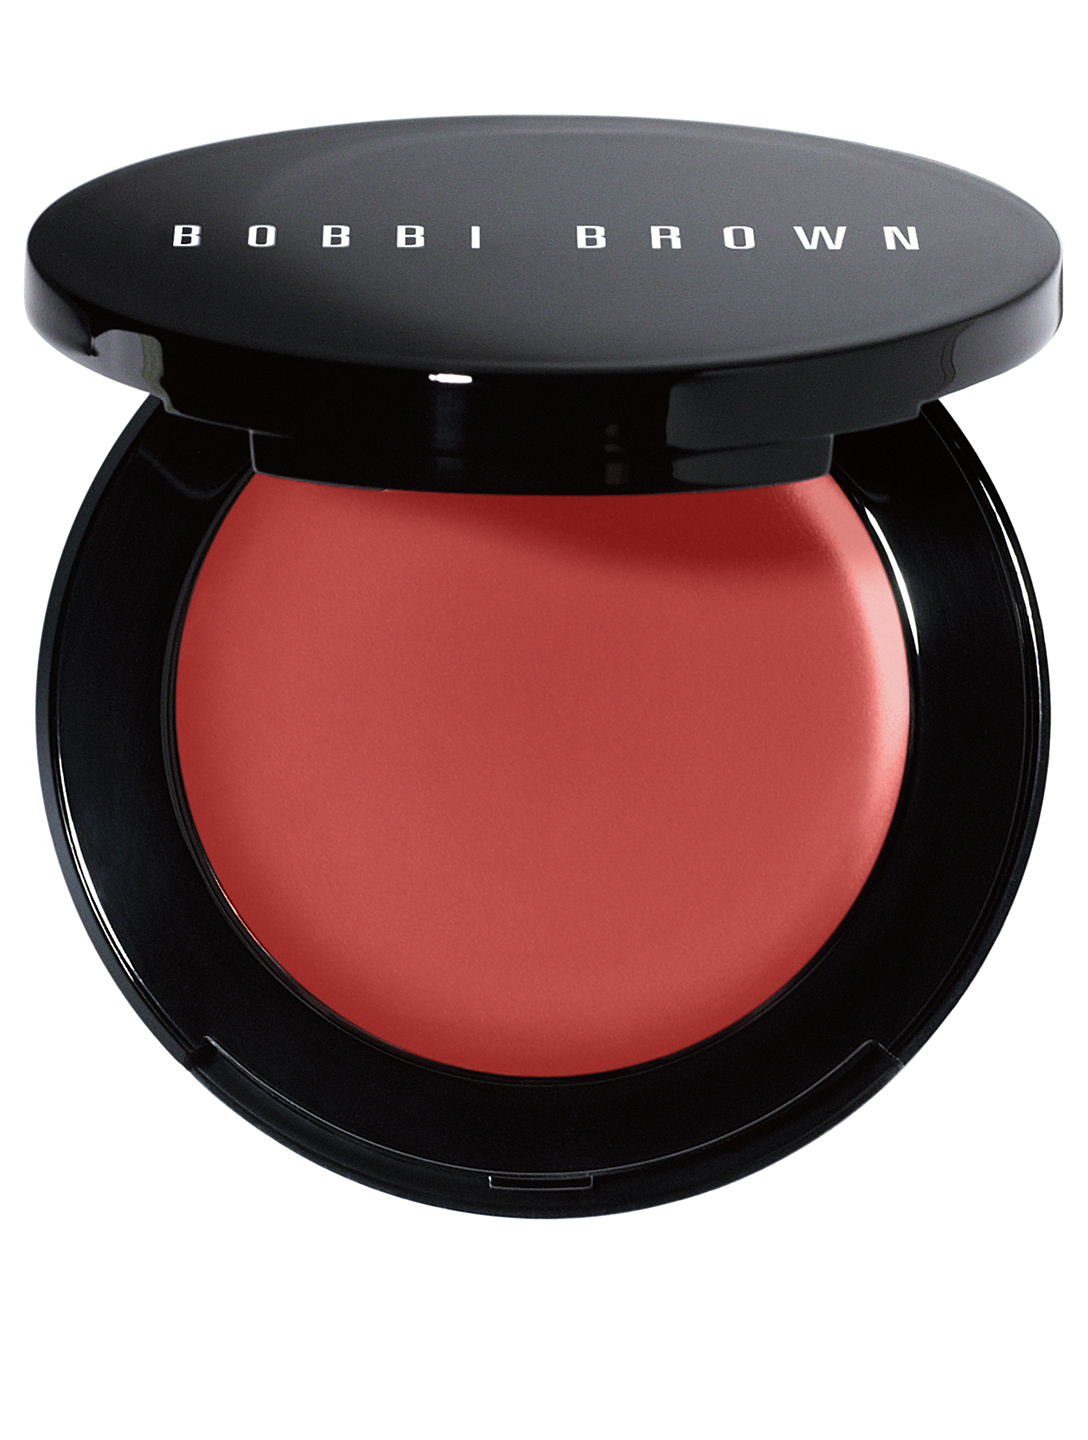 BOBBI BROWN Pot Rouge for Lips & Cheeks Beauty Pink